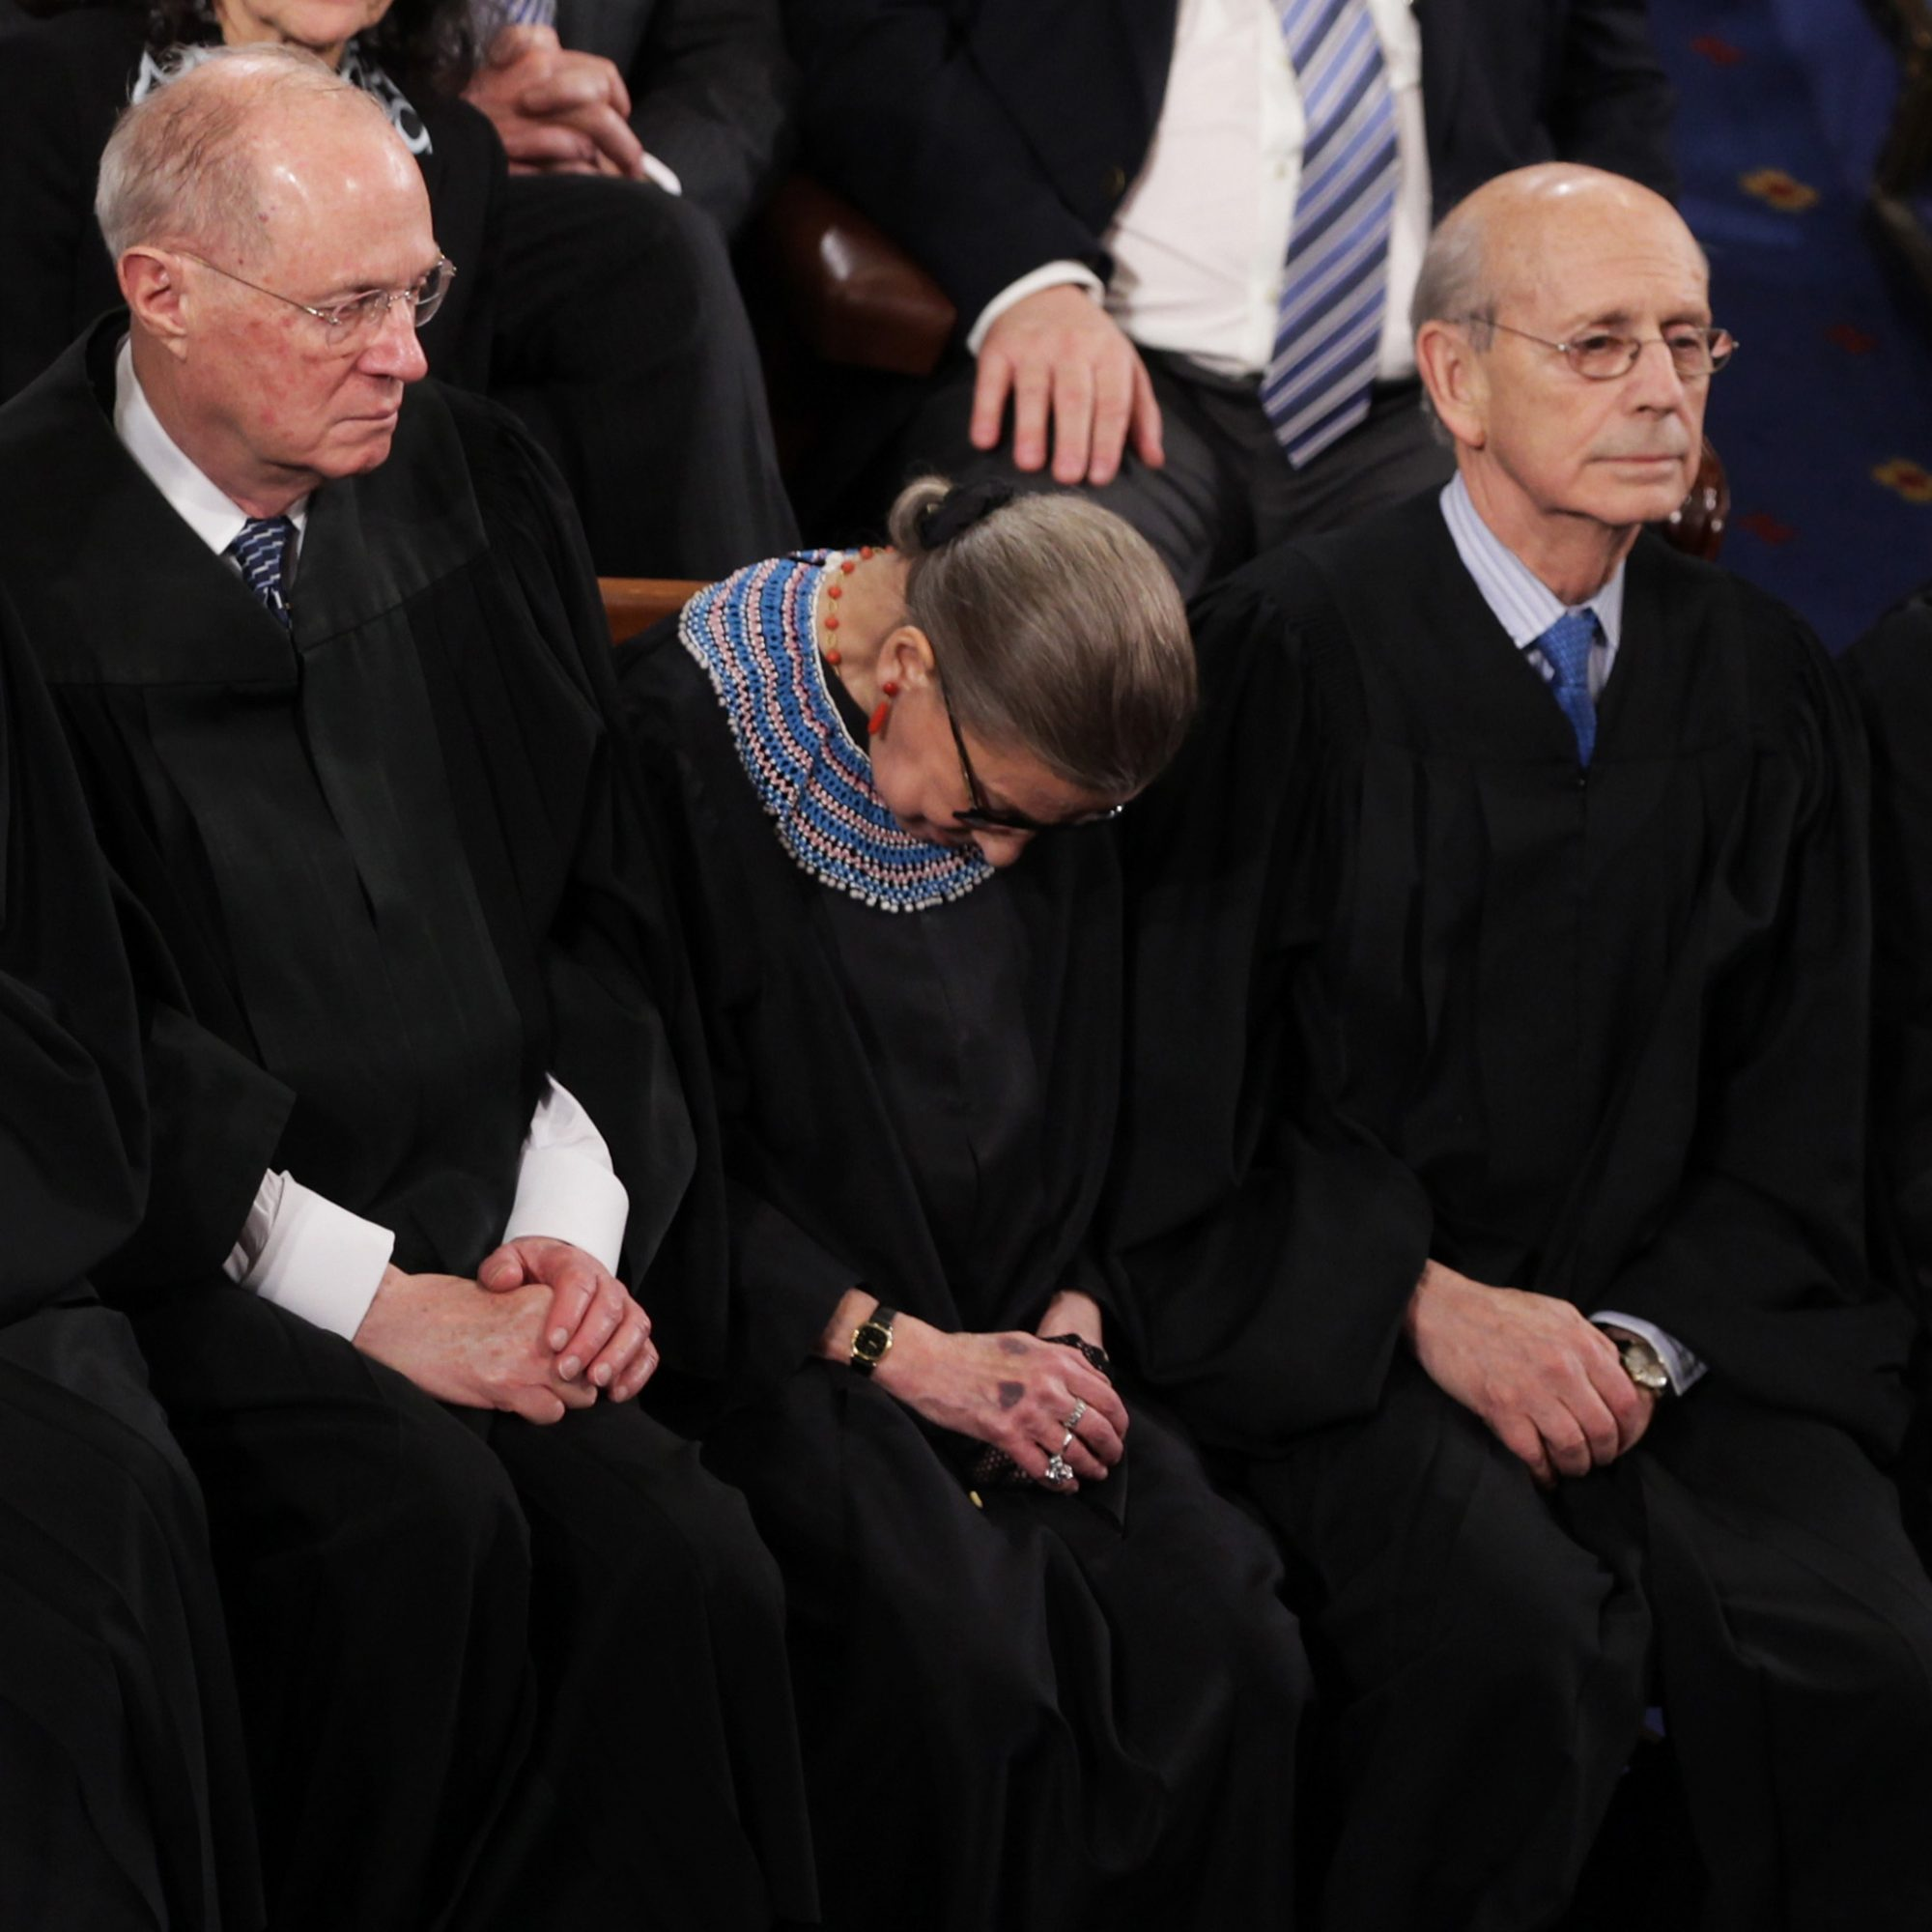 Ruth Bader Ginsburg Loves Bragging About How Much Opus One She Drinks